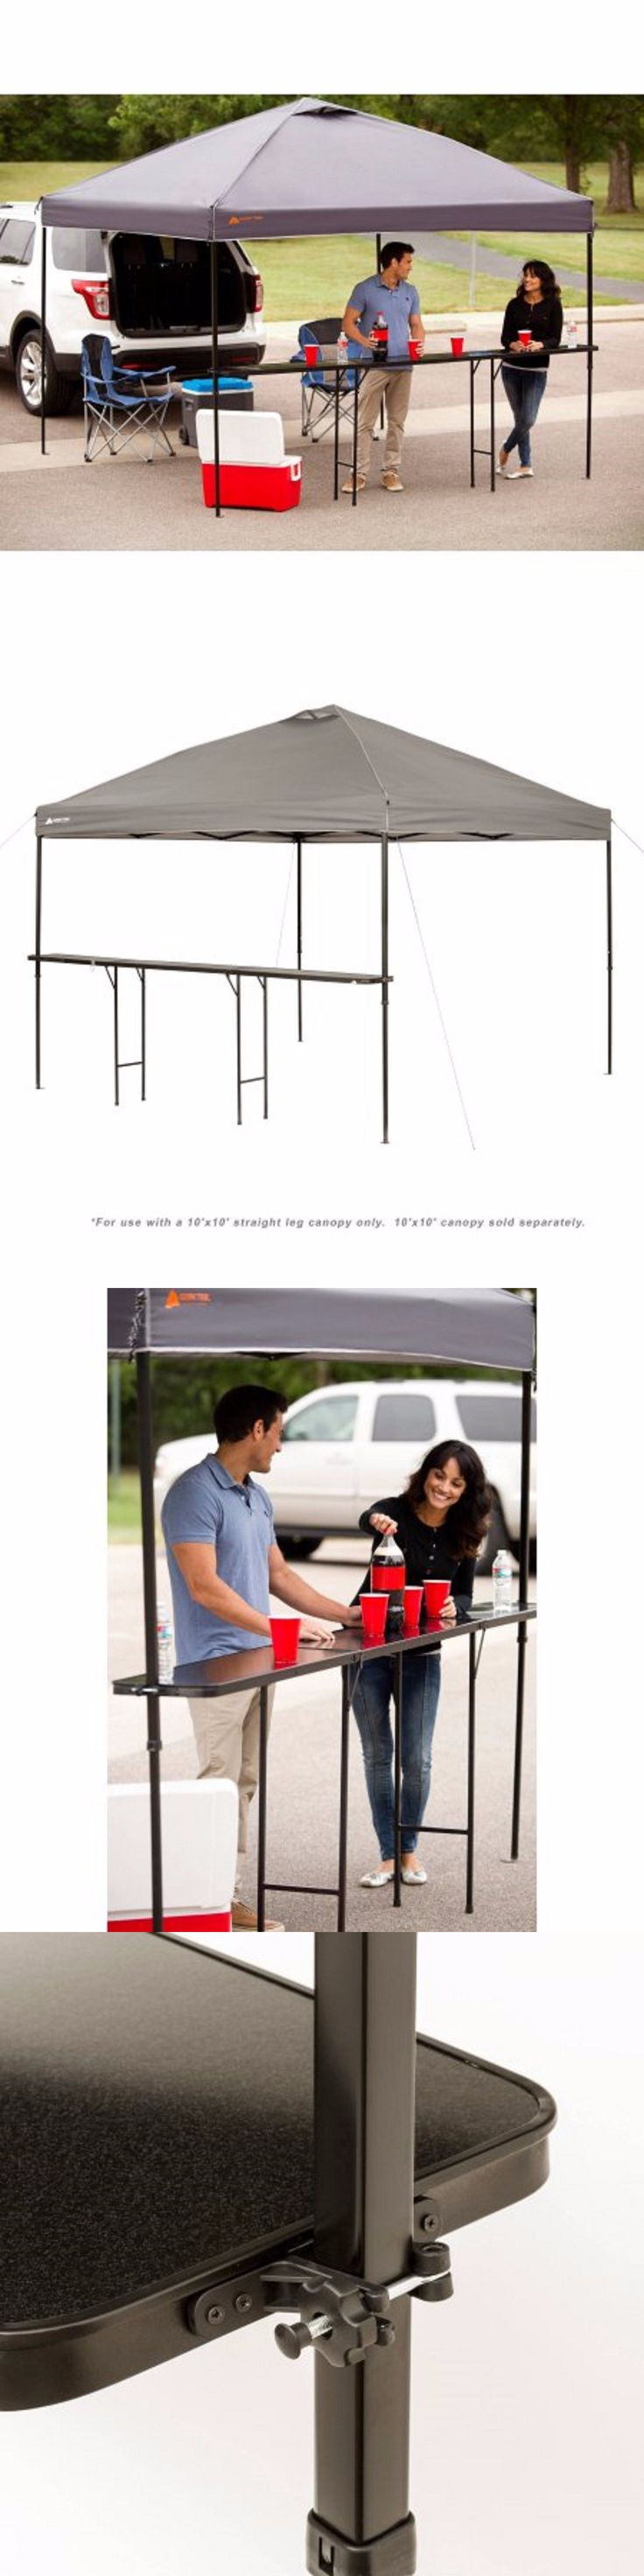 Canopies and Shelters 179011: Ozark Trail Bar-Height 10 Folding Canopy Table -> BUY IT NOW ONLY: $52.76 on eBay!